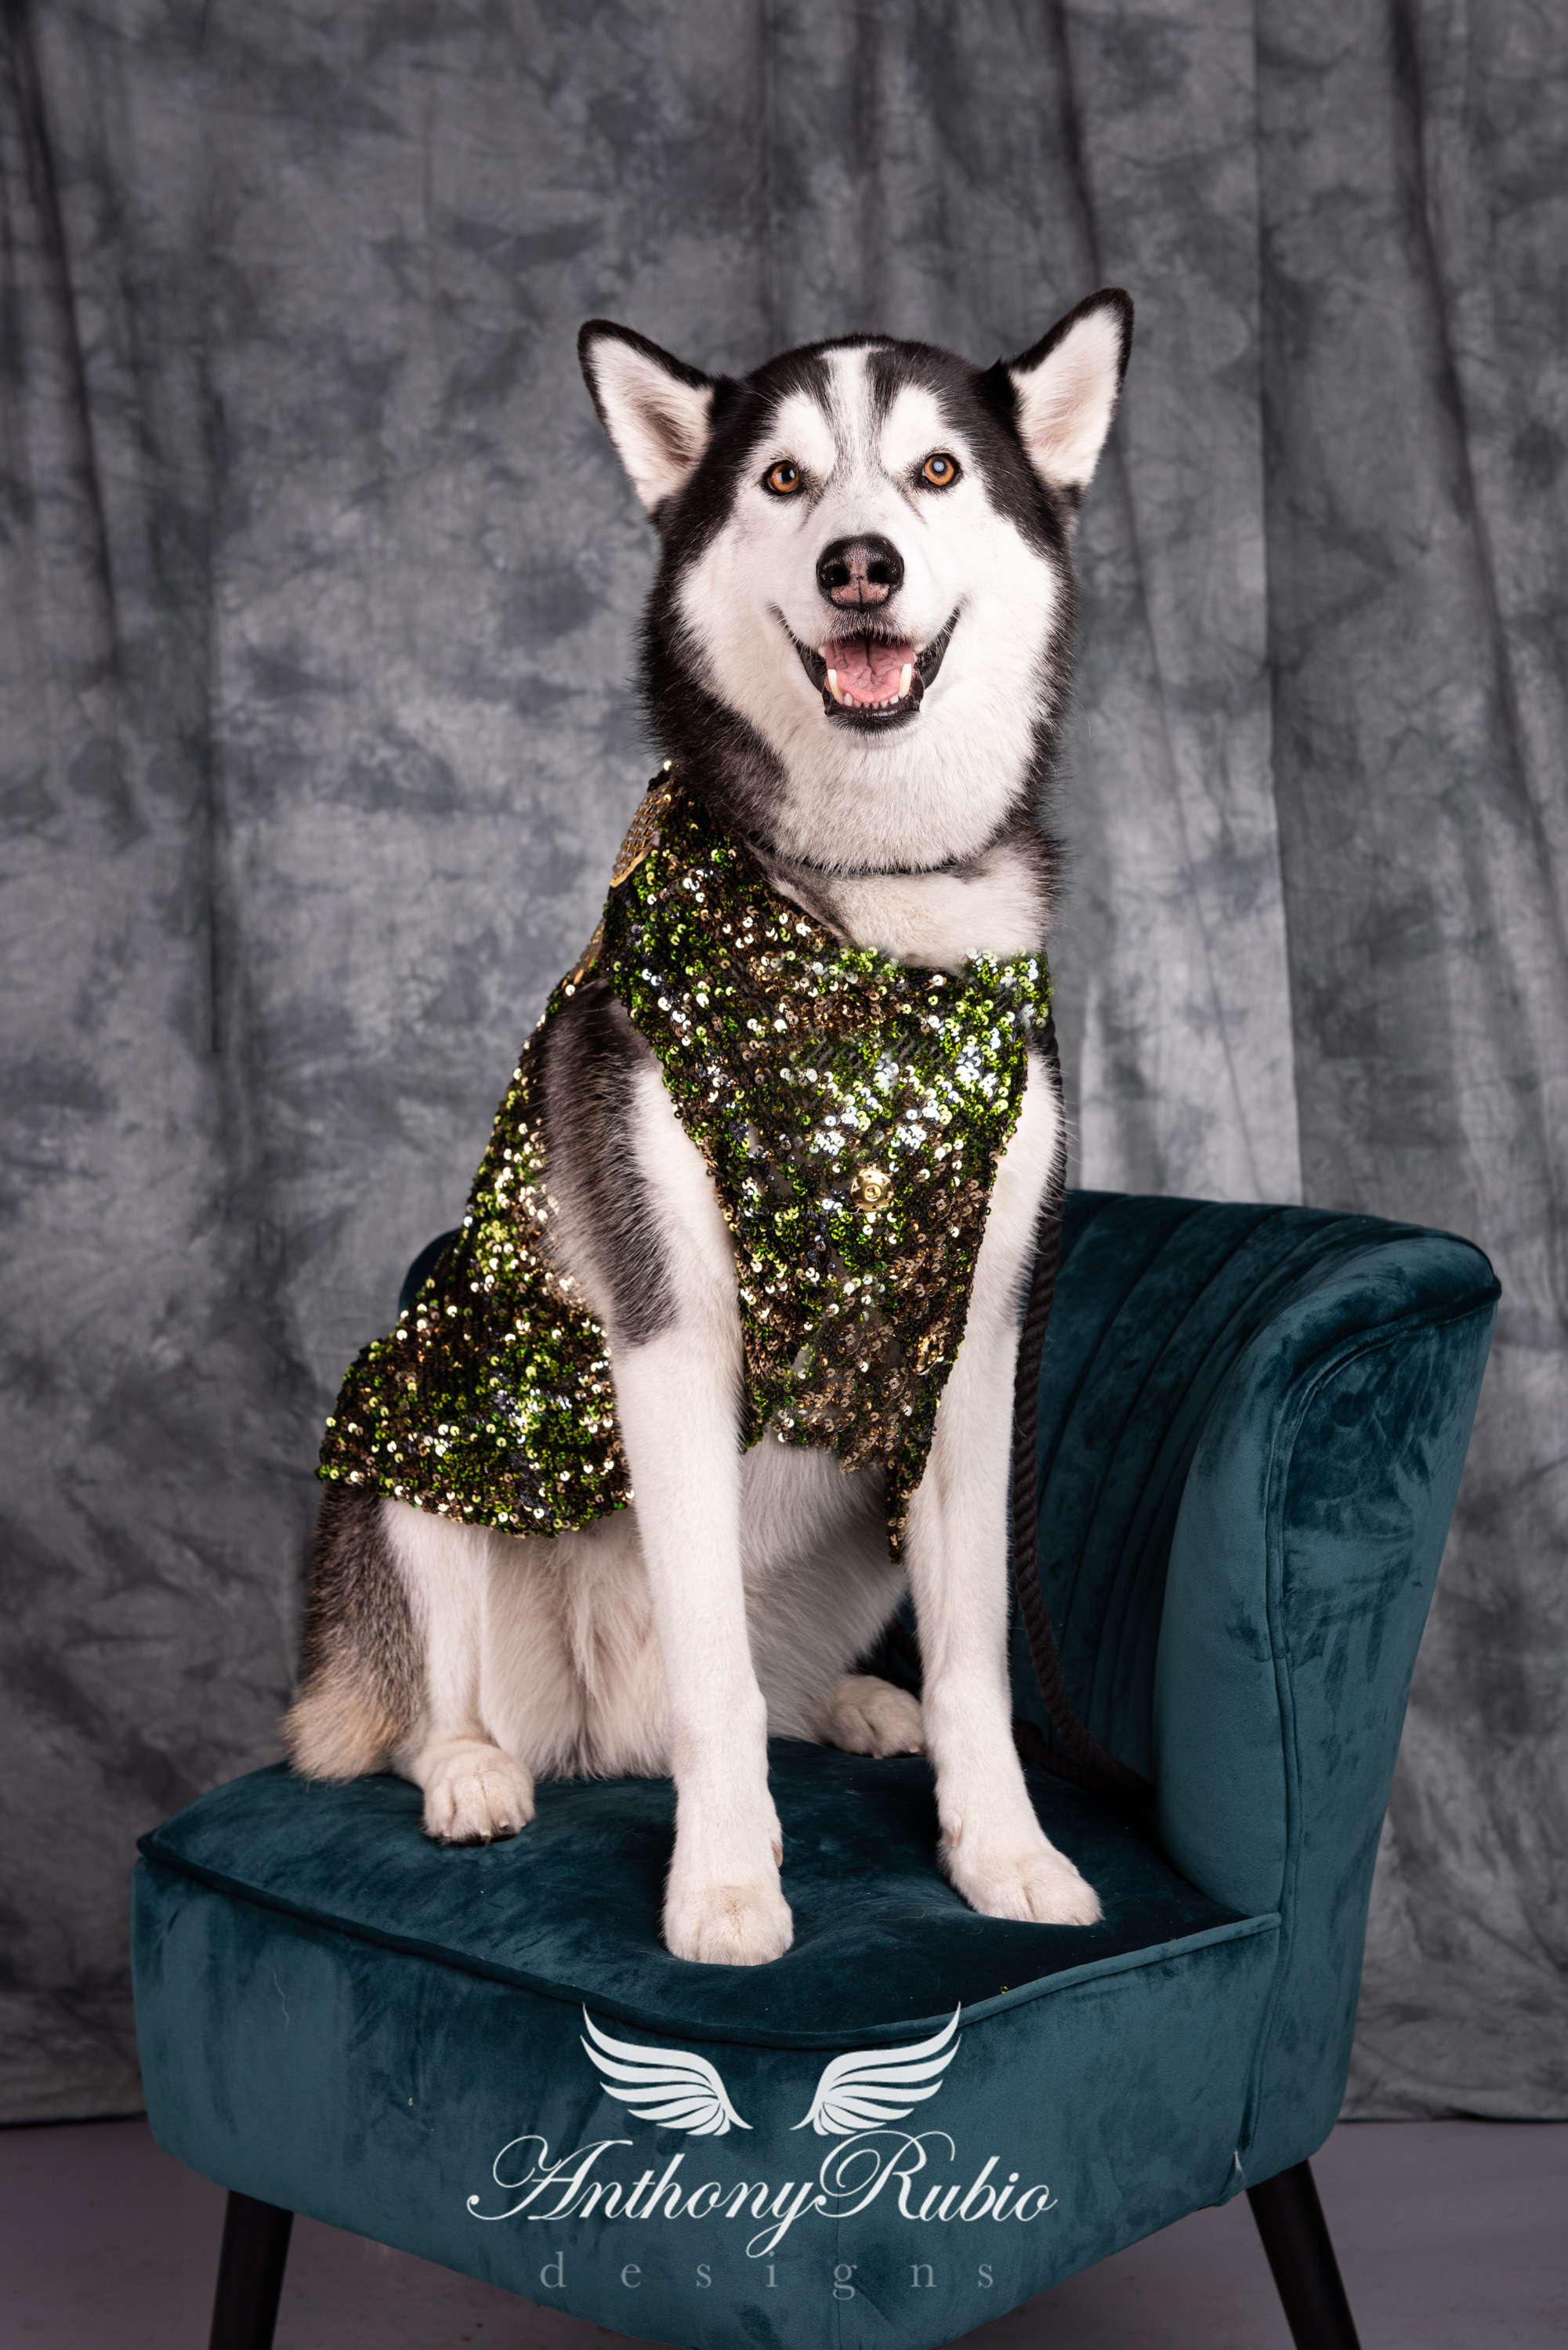 Anthony Rubio, Dog Fashion, Canine Couture, Pet Fashion,